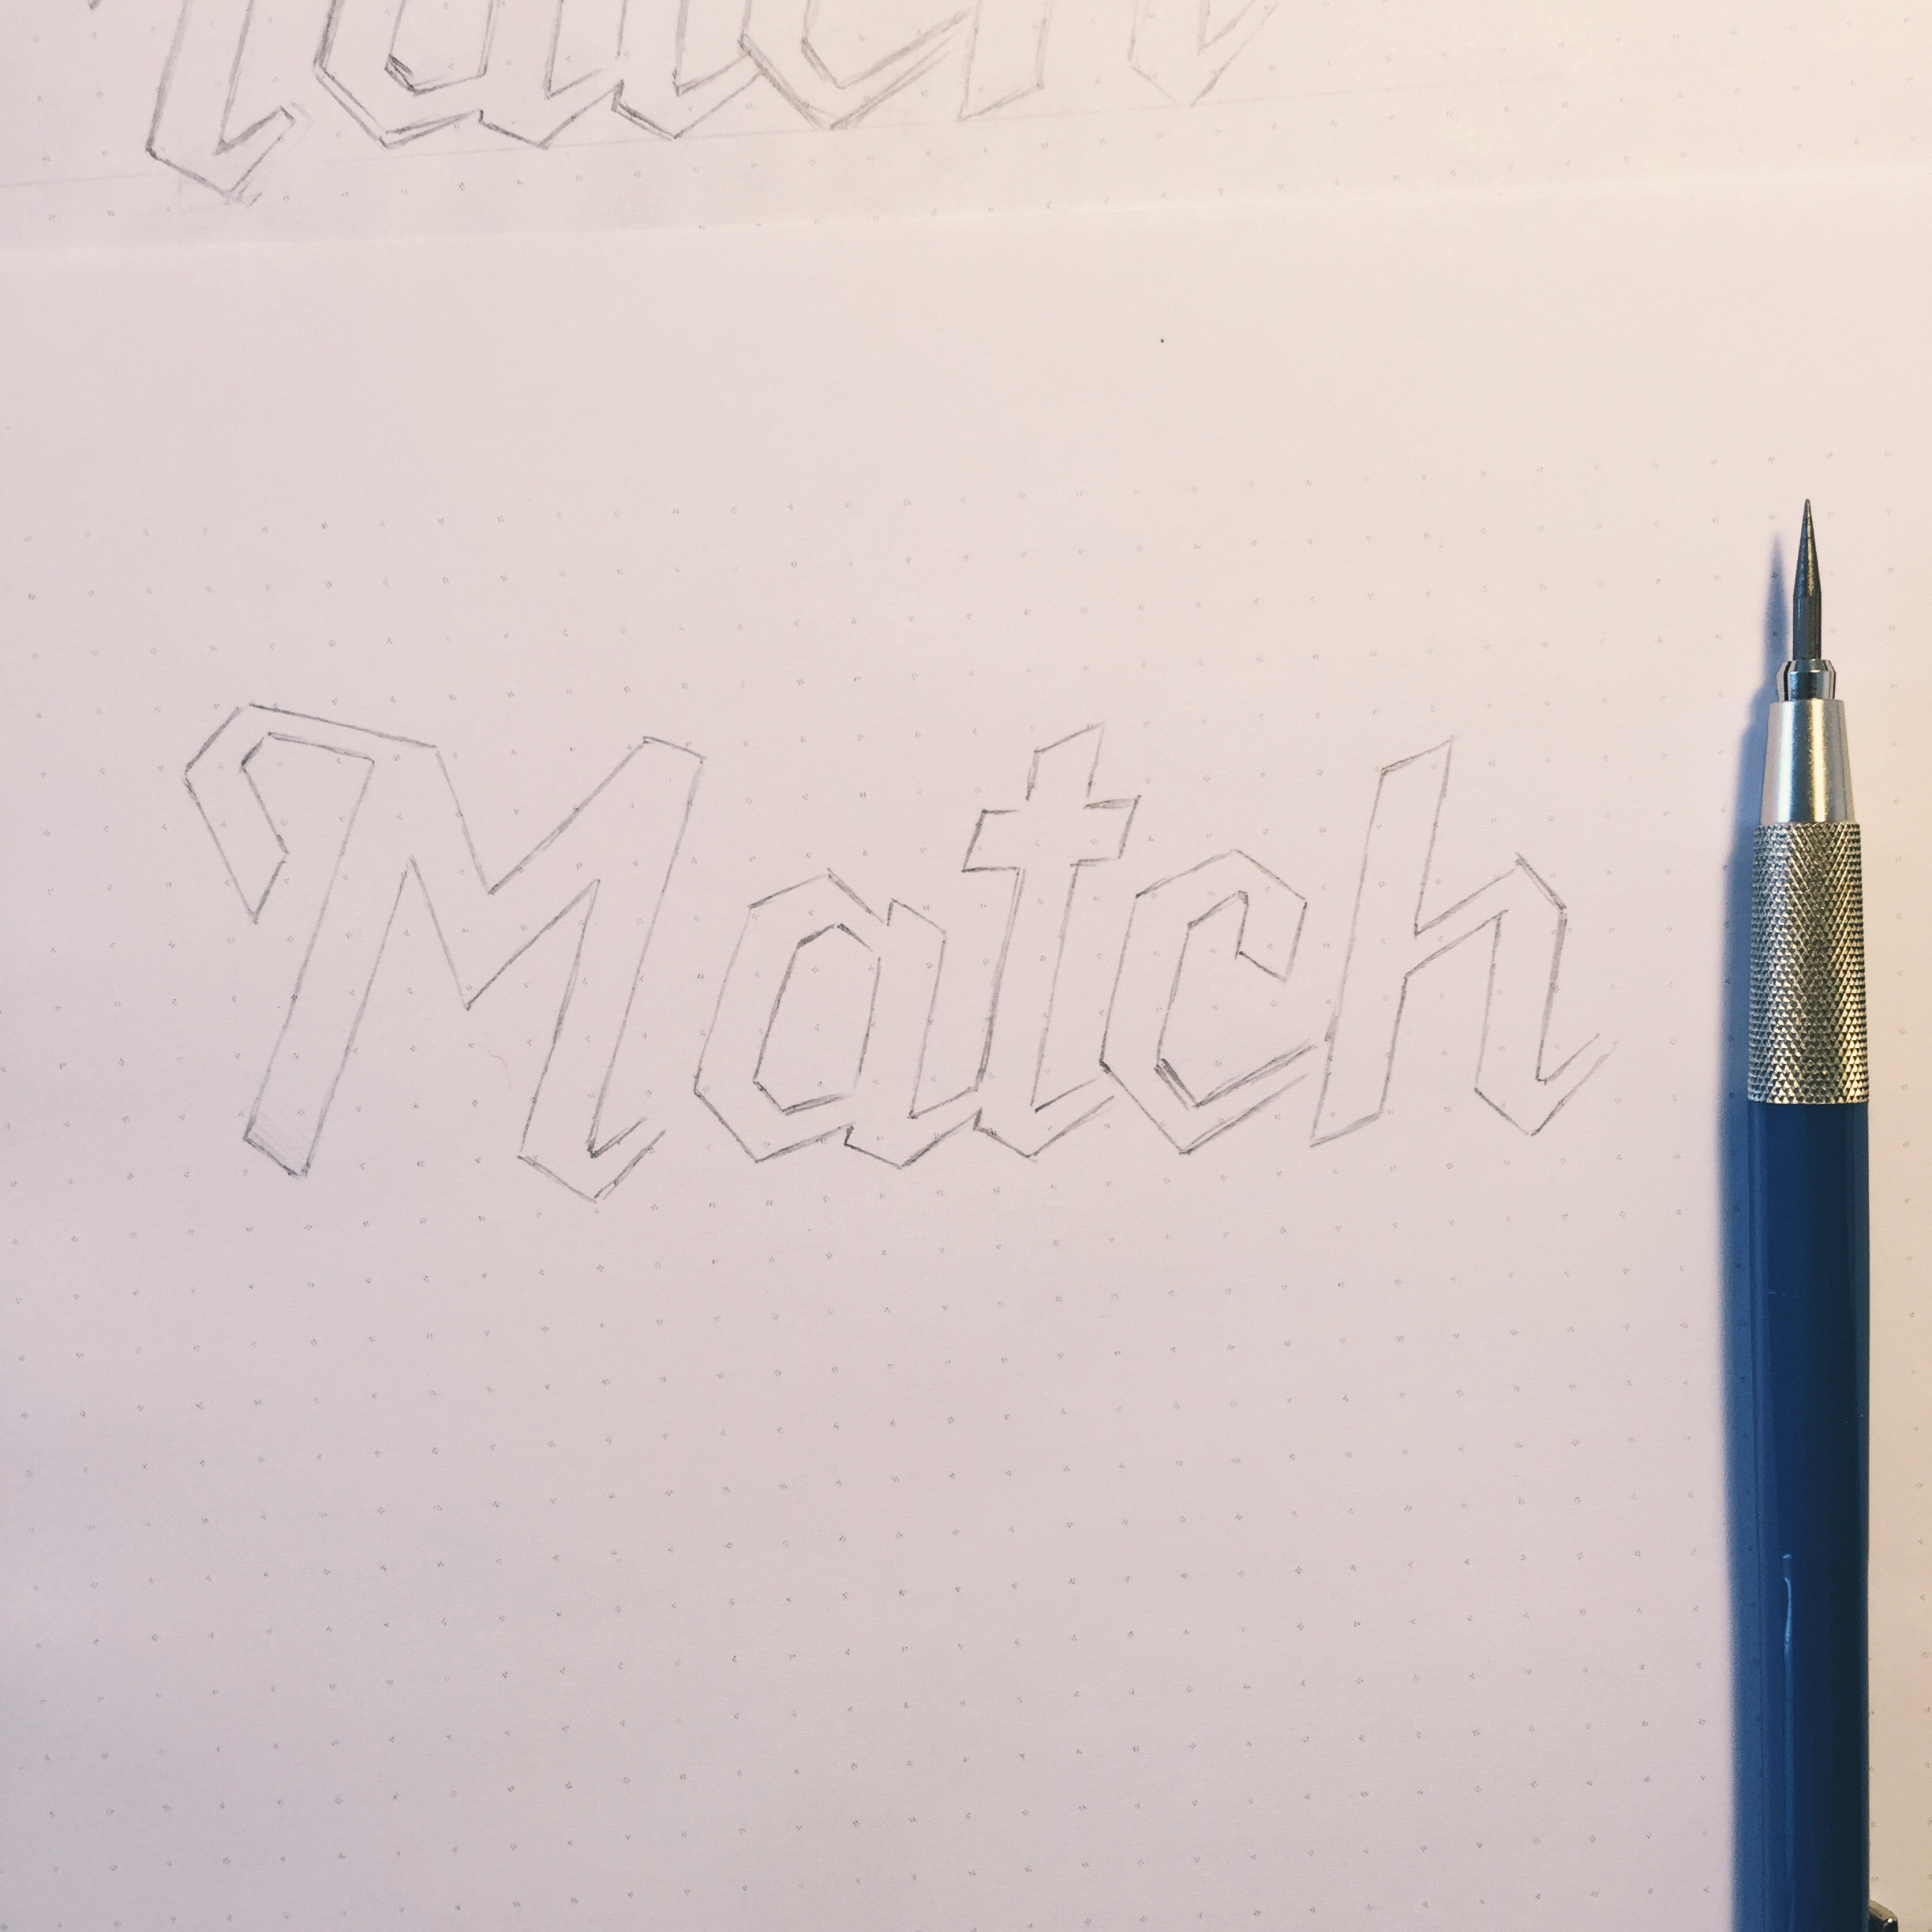 Refining the lettering before digitizing